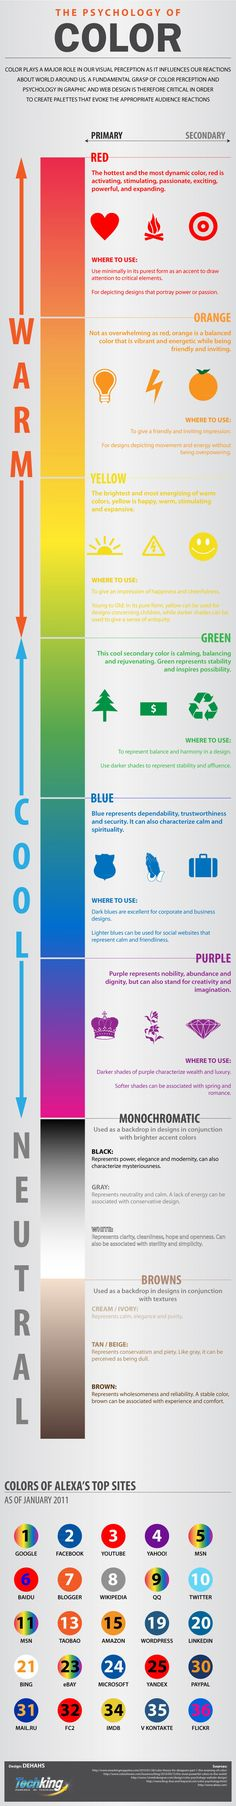 Psychology of color in marketing.